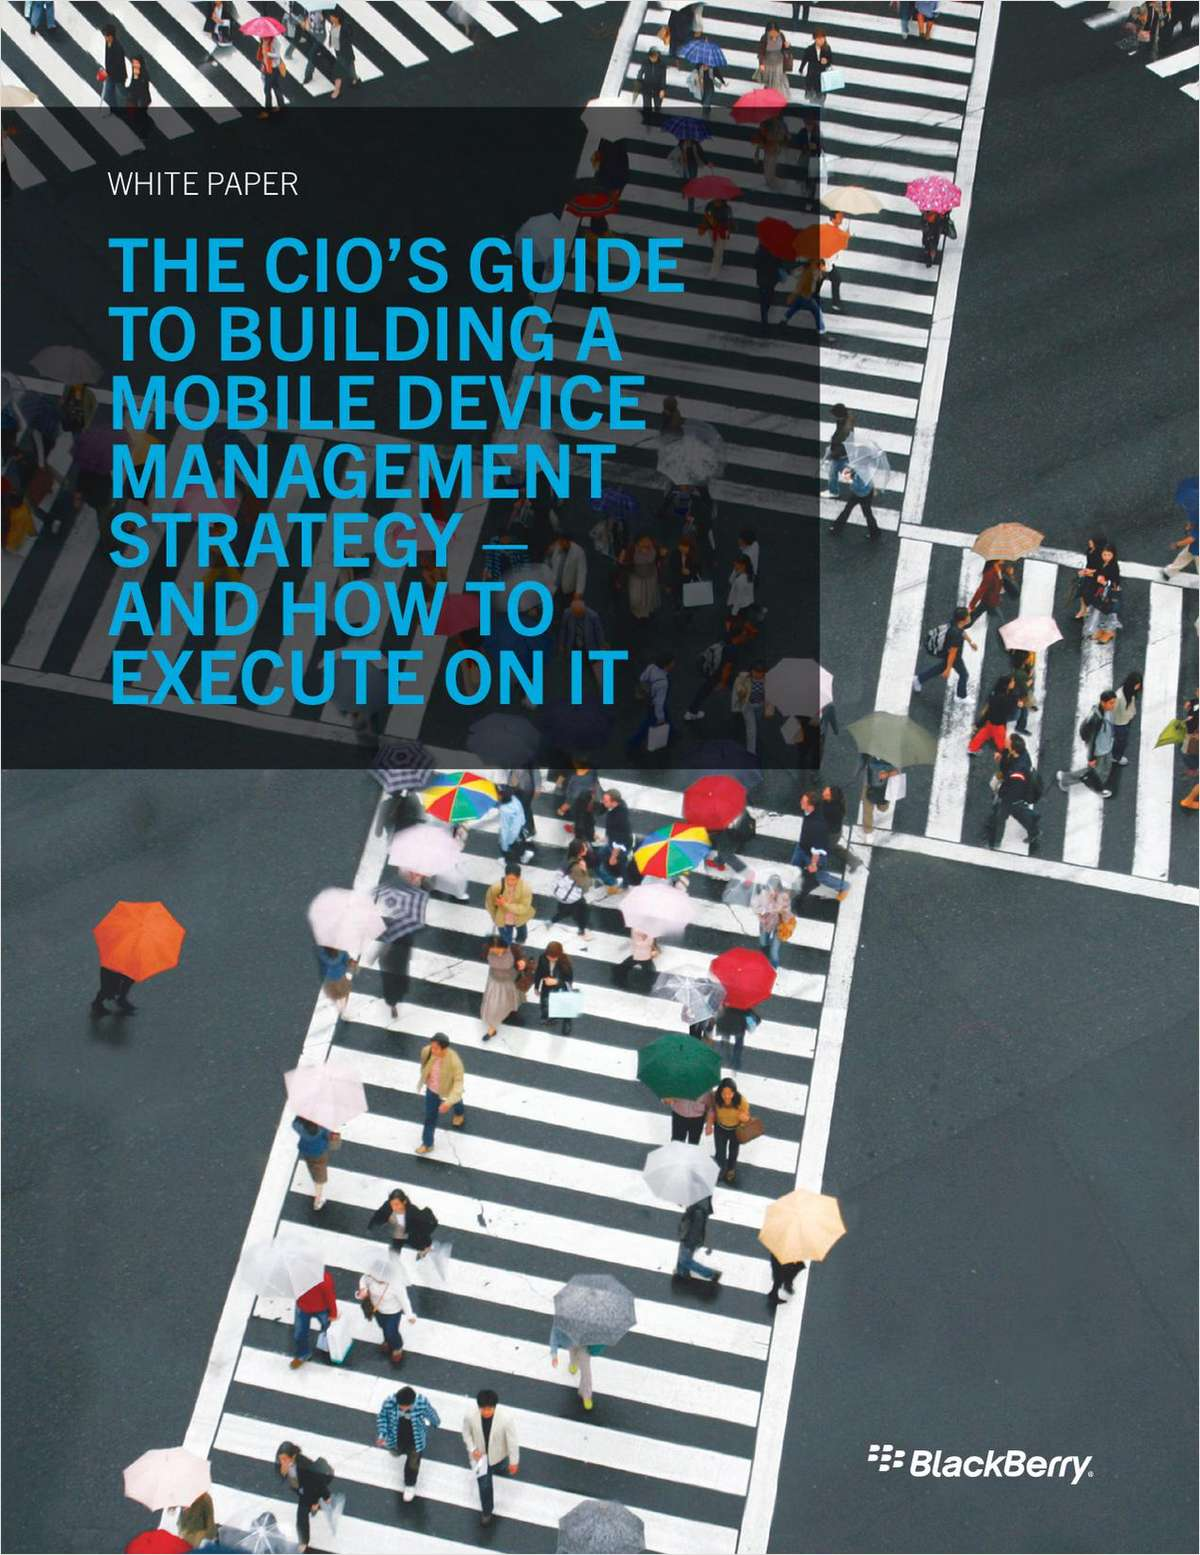 The CIO's Guide to Building a Mobile Device Management Strategy - And How to Execute on It